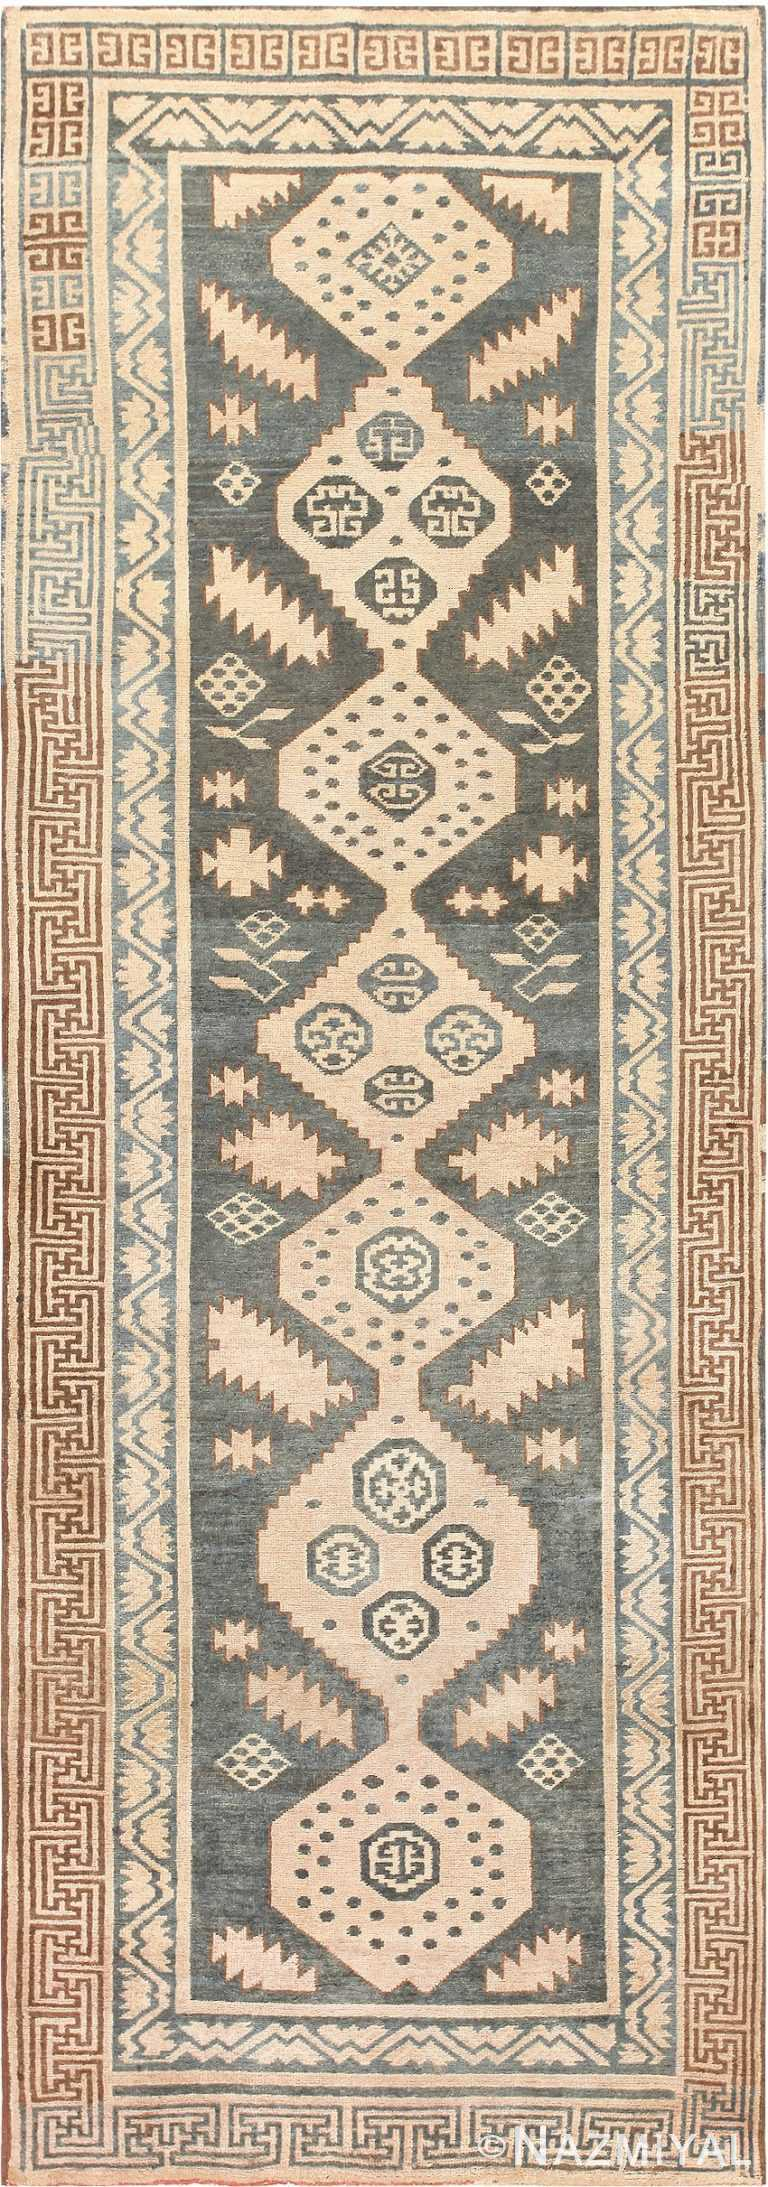 Tribal Long and Narrow Blue Antique Khotan Carpet #47250 by Nazmiyal Antique Rugs